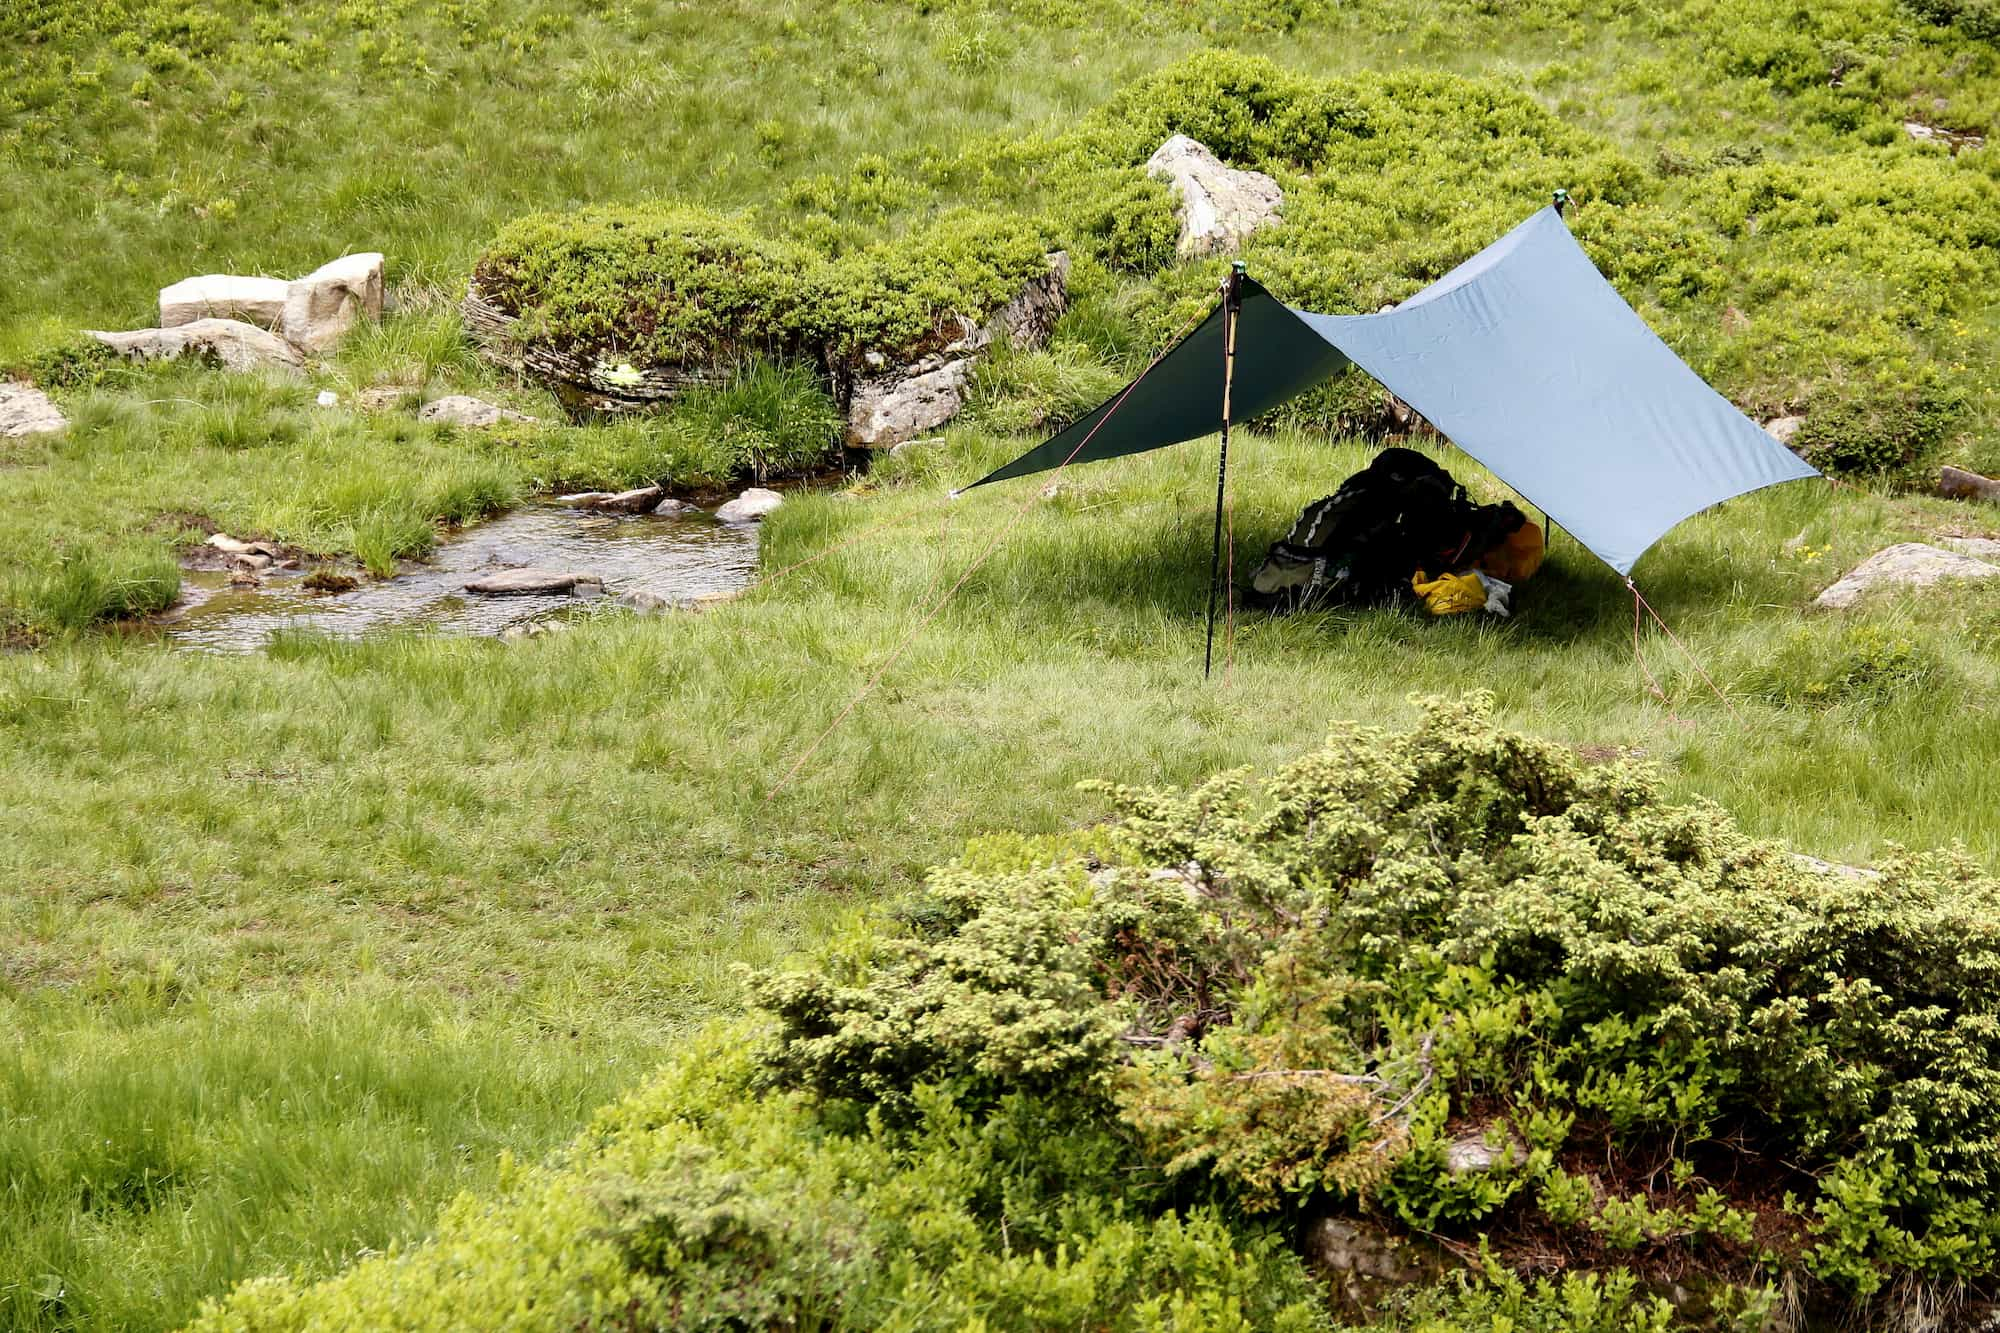 Backpackers tarp camp setup beside a creek.